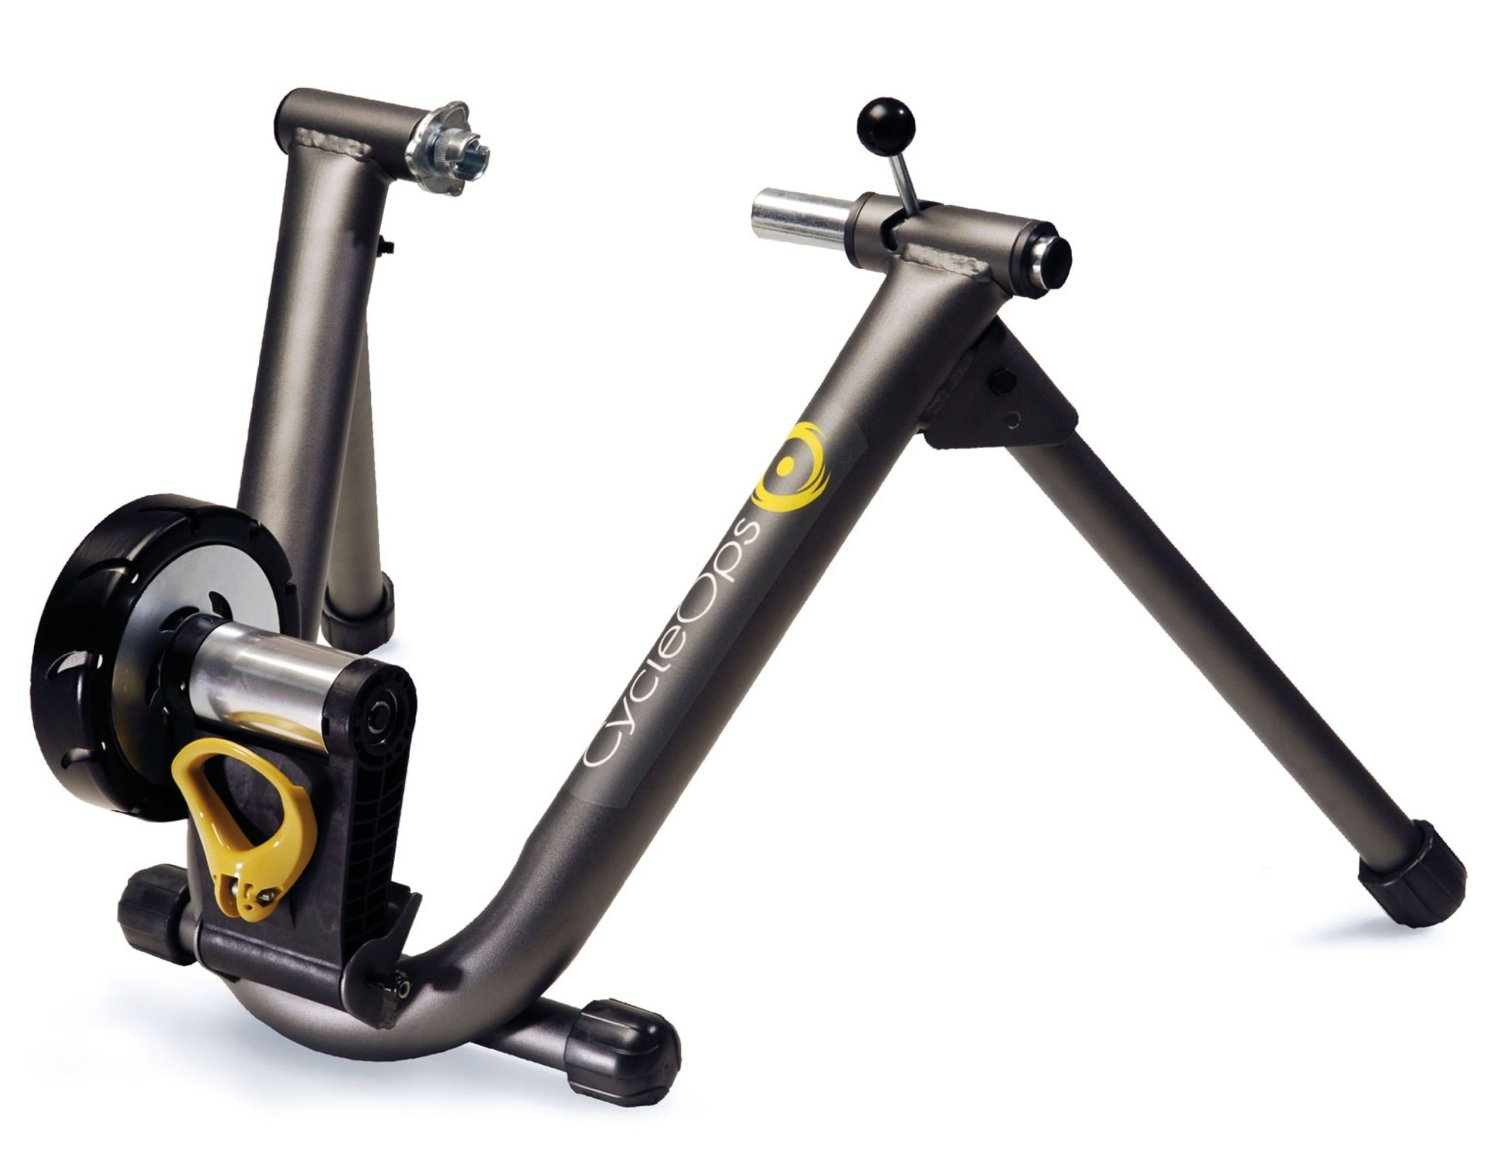 CycleOps SuperMagneto Pro Turbo Bike Trainer - etrailer.com